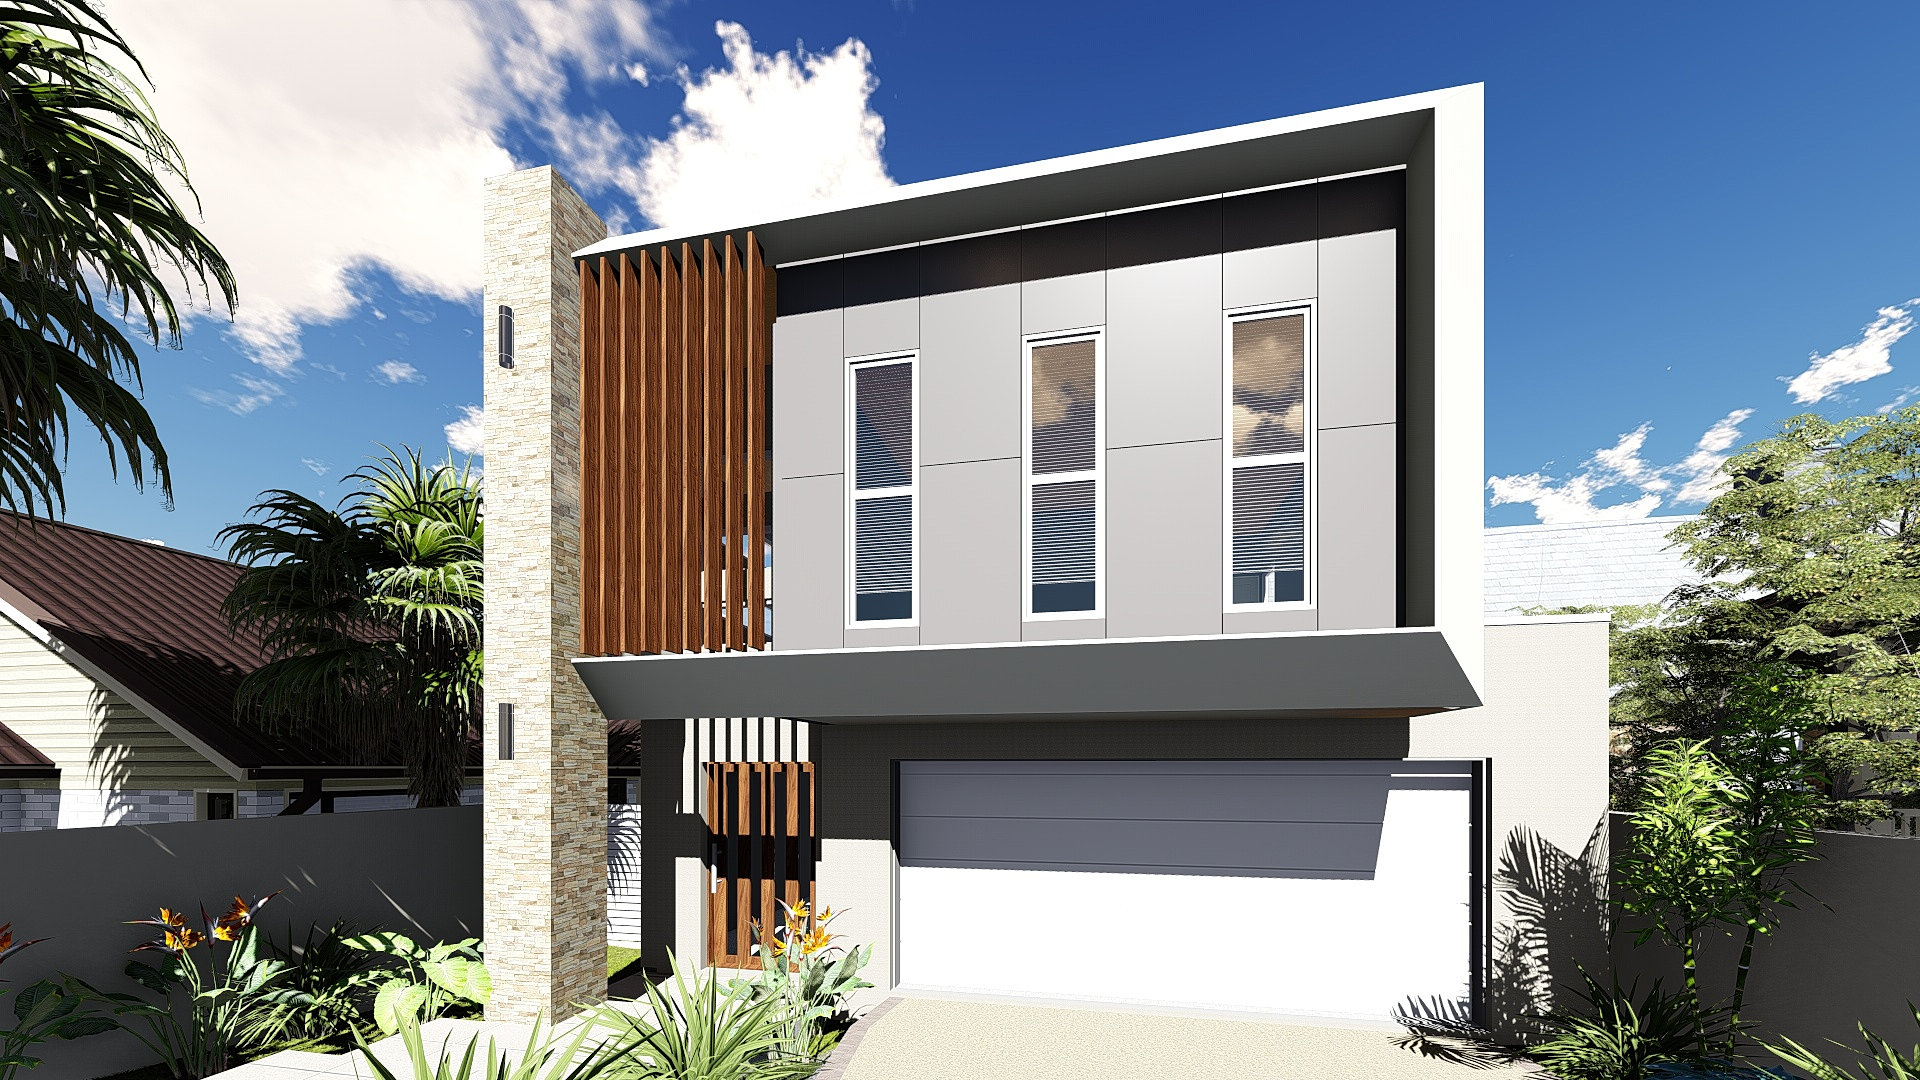 Blueprint designs small lot homes for narrow blocks for 10m frontage home designs brisbane